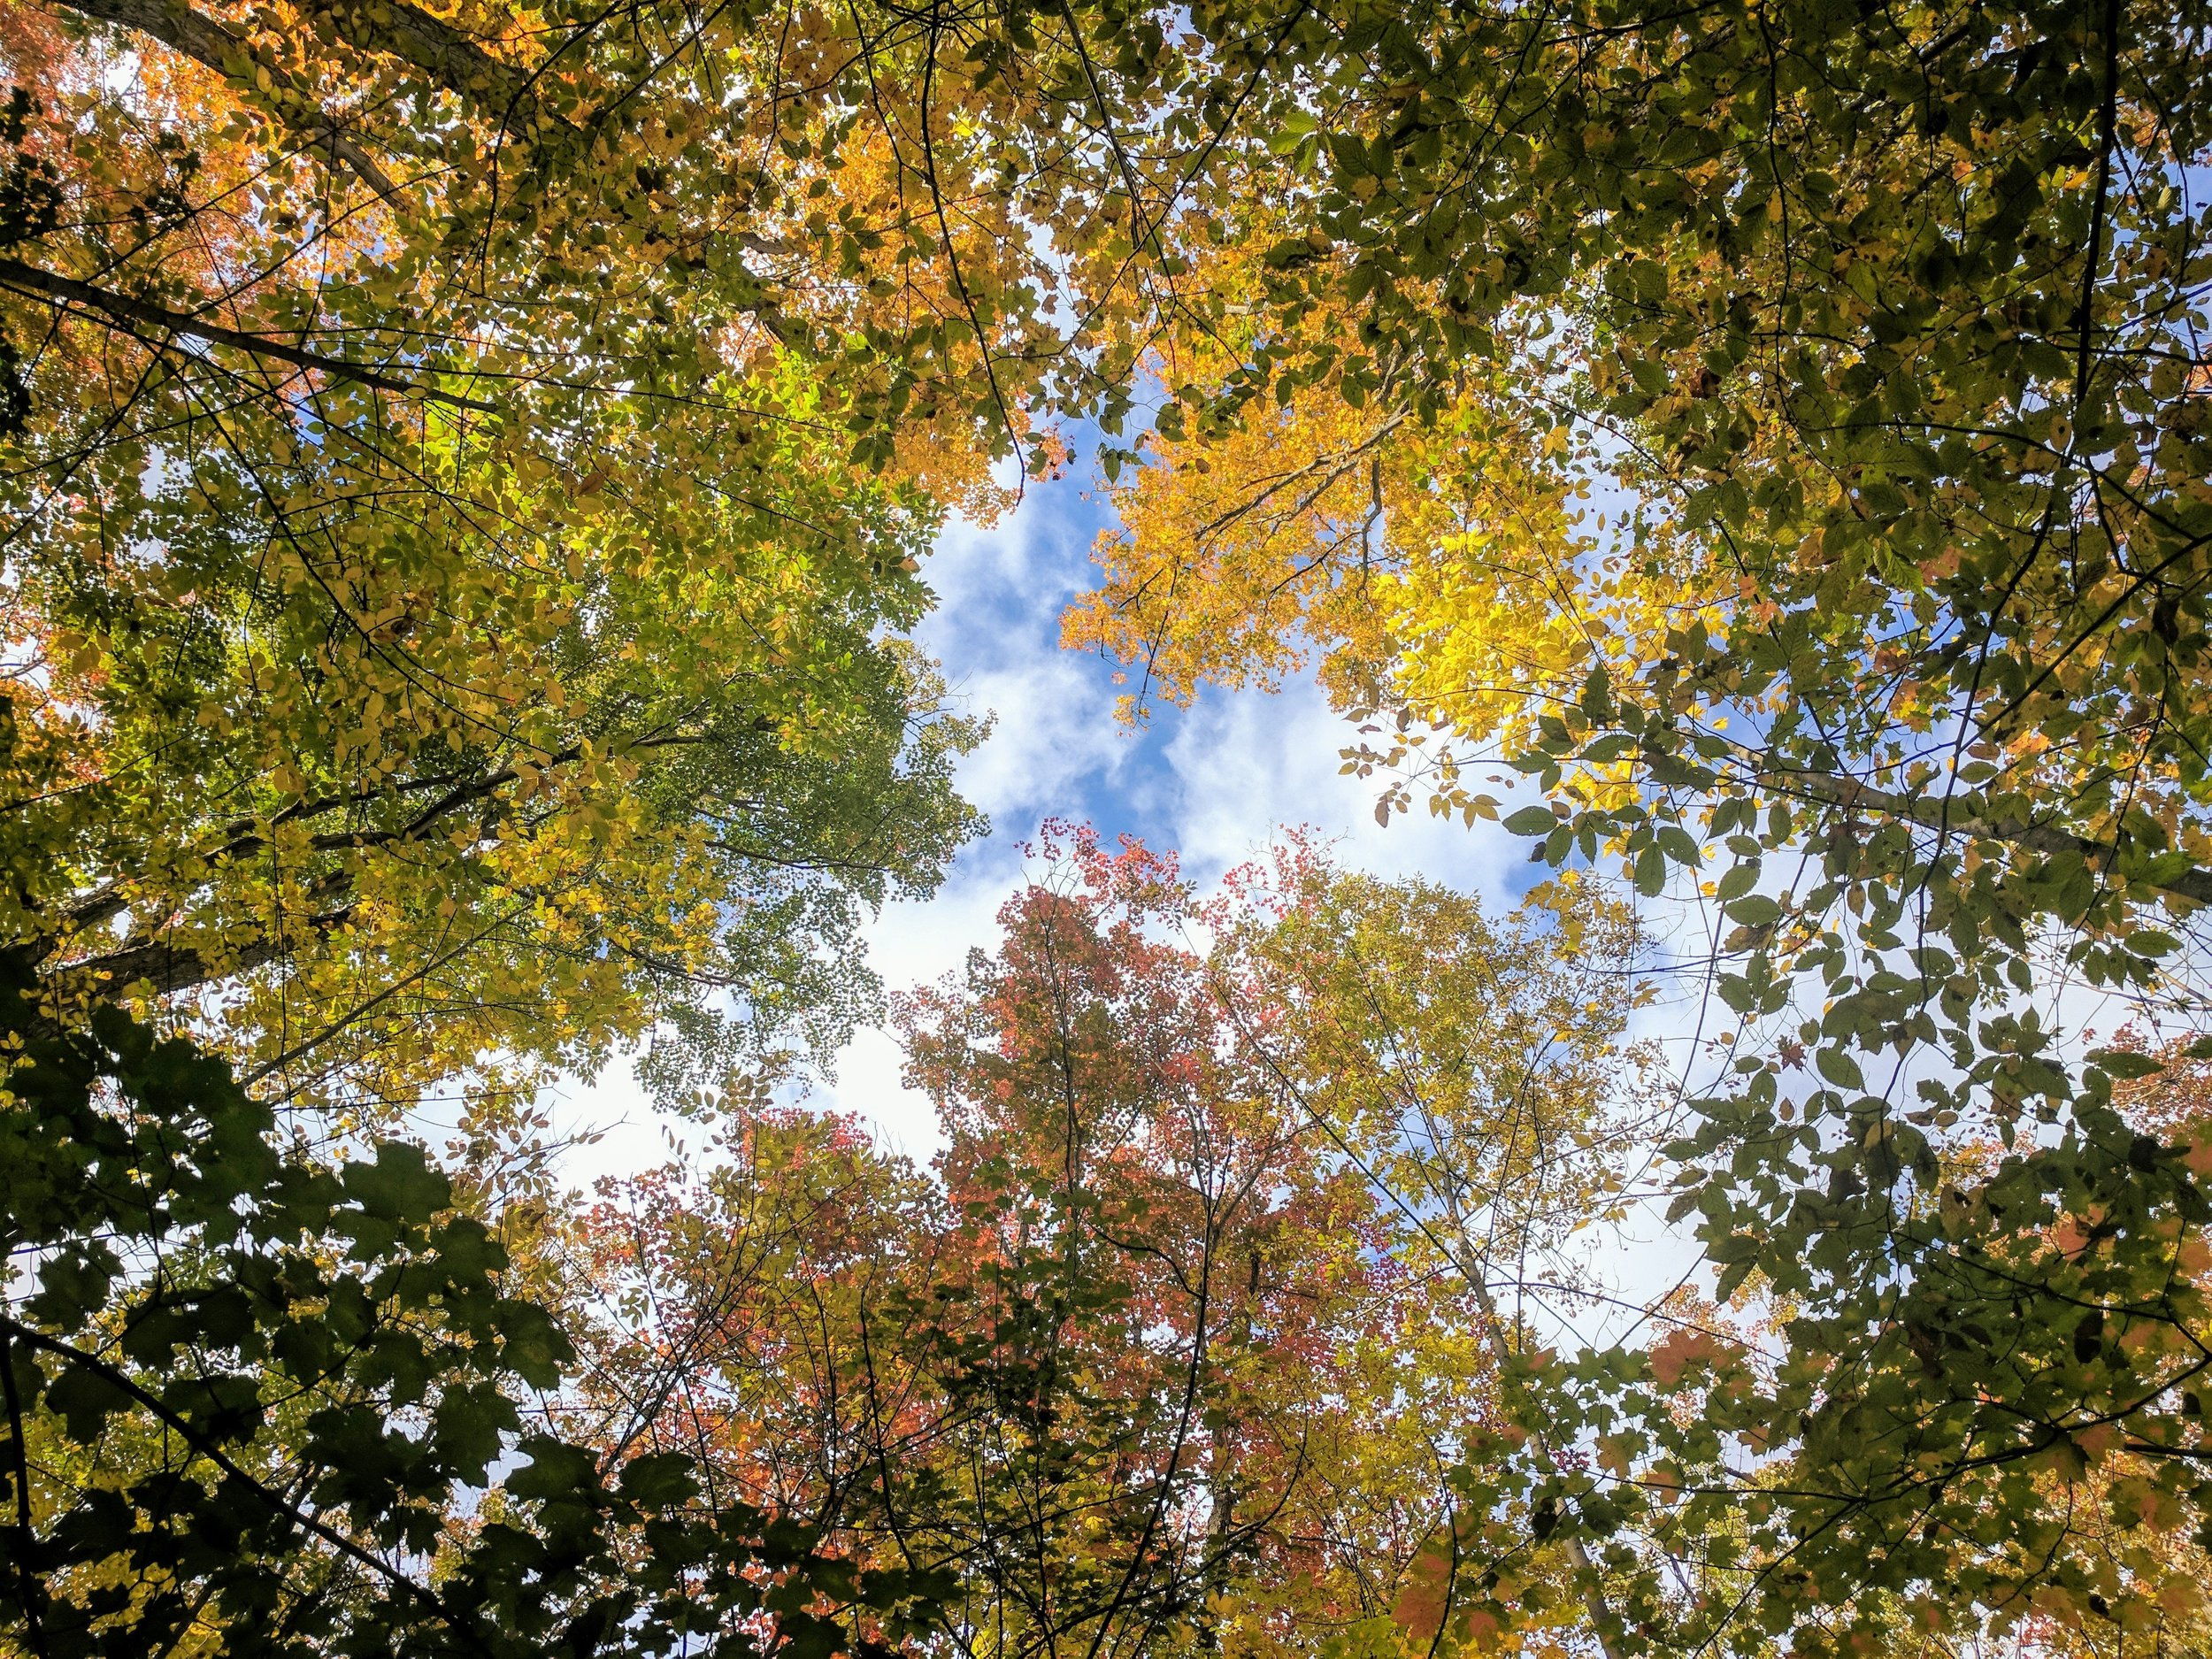 colorful-forest-leaves-in-canopy photo.jpg